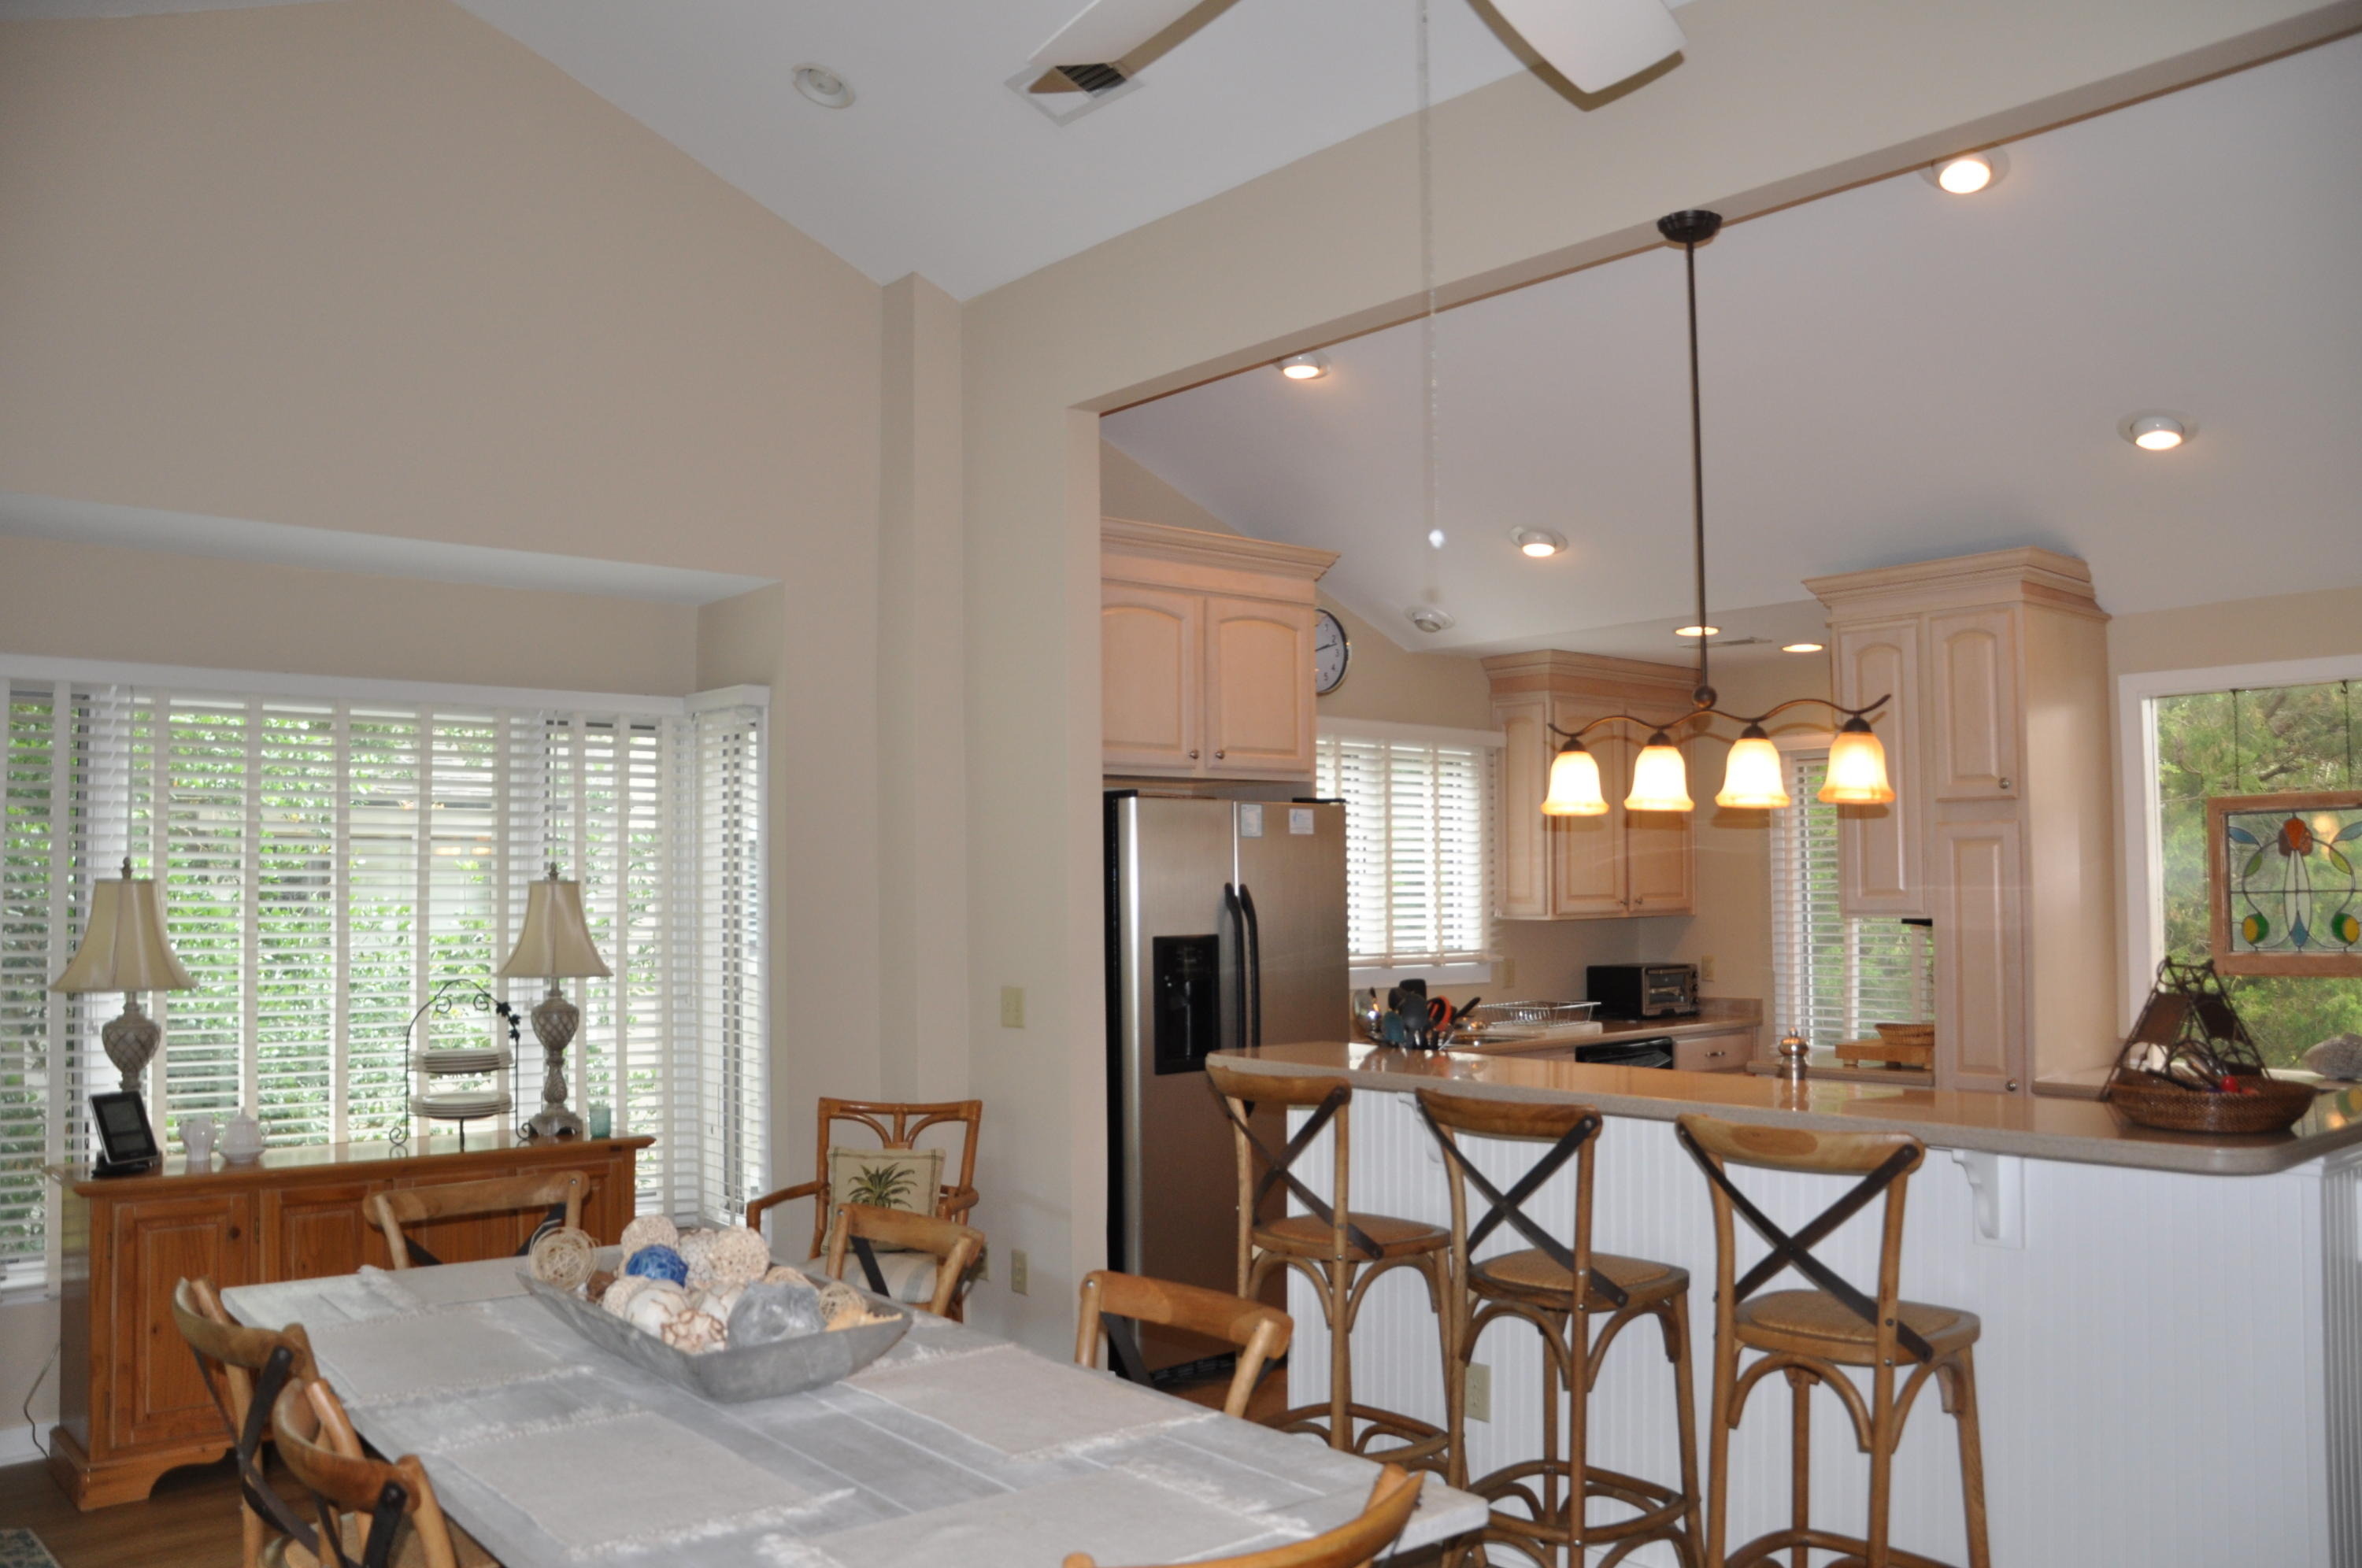 Fairway Villas Homes For Sale - 25 Fairway Dunes (1/6 Share), Isle of Palms, SC - 10